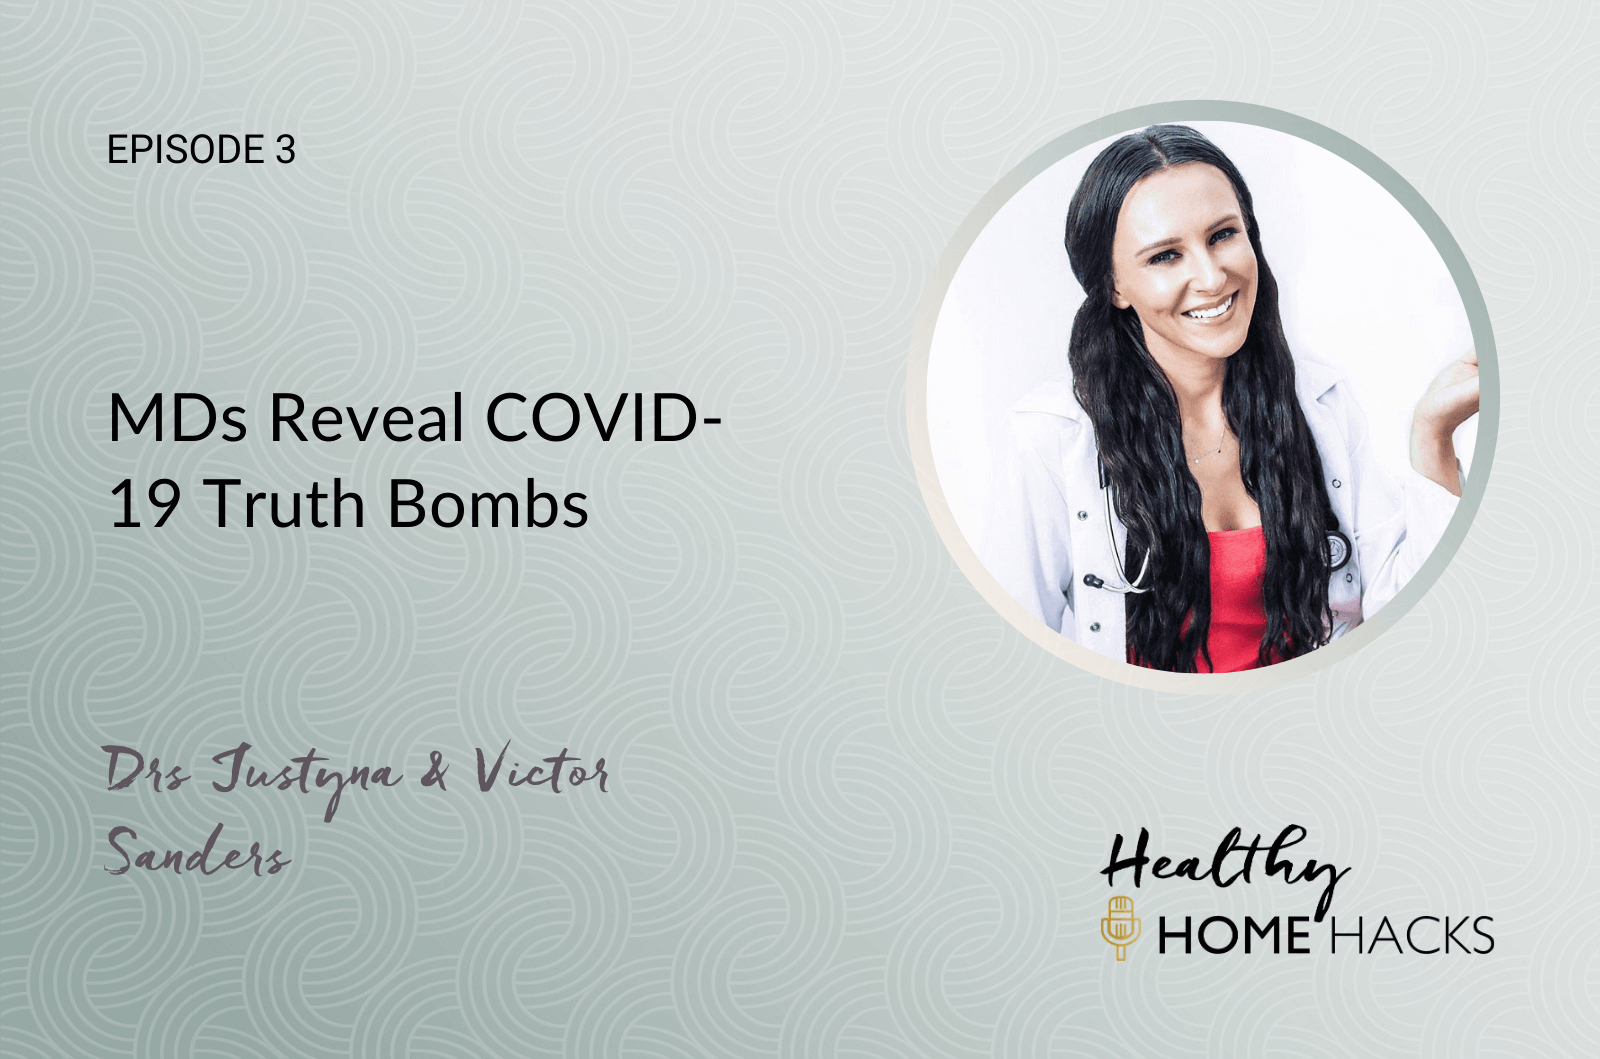 MD's Reveal COVID-19 Truth Bombs